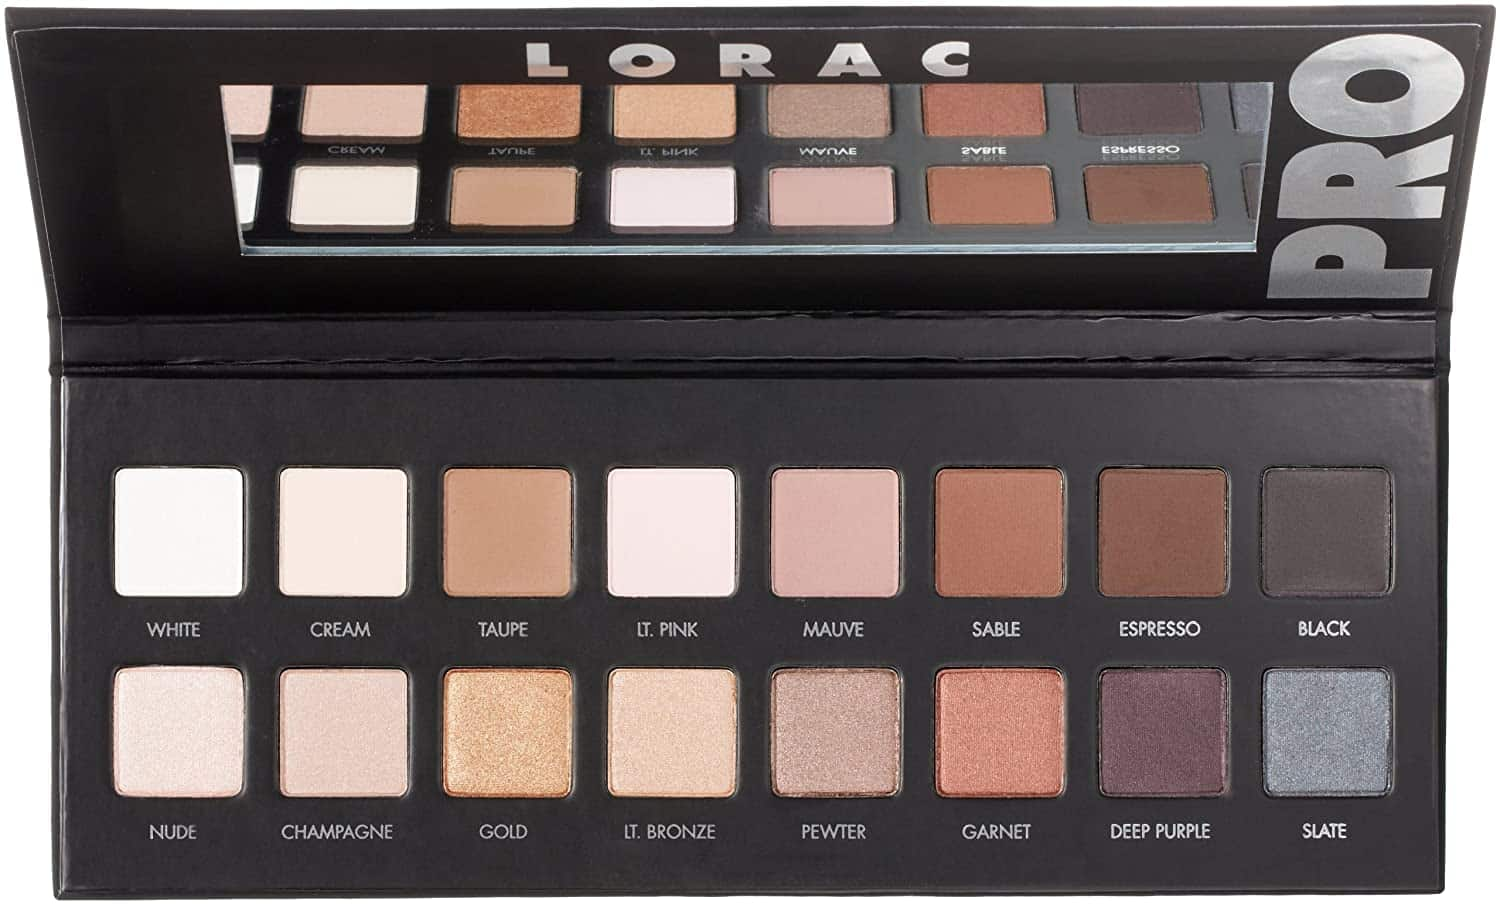 LORAC Pro Palette Eyeshadow Kit $23.40 @ Amazon Lowest Ever Per CCC